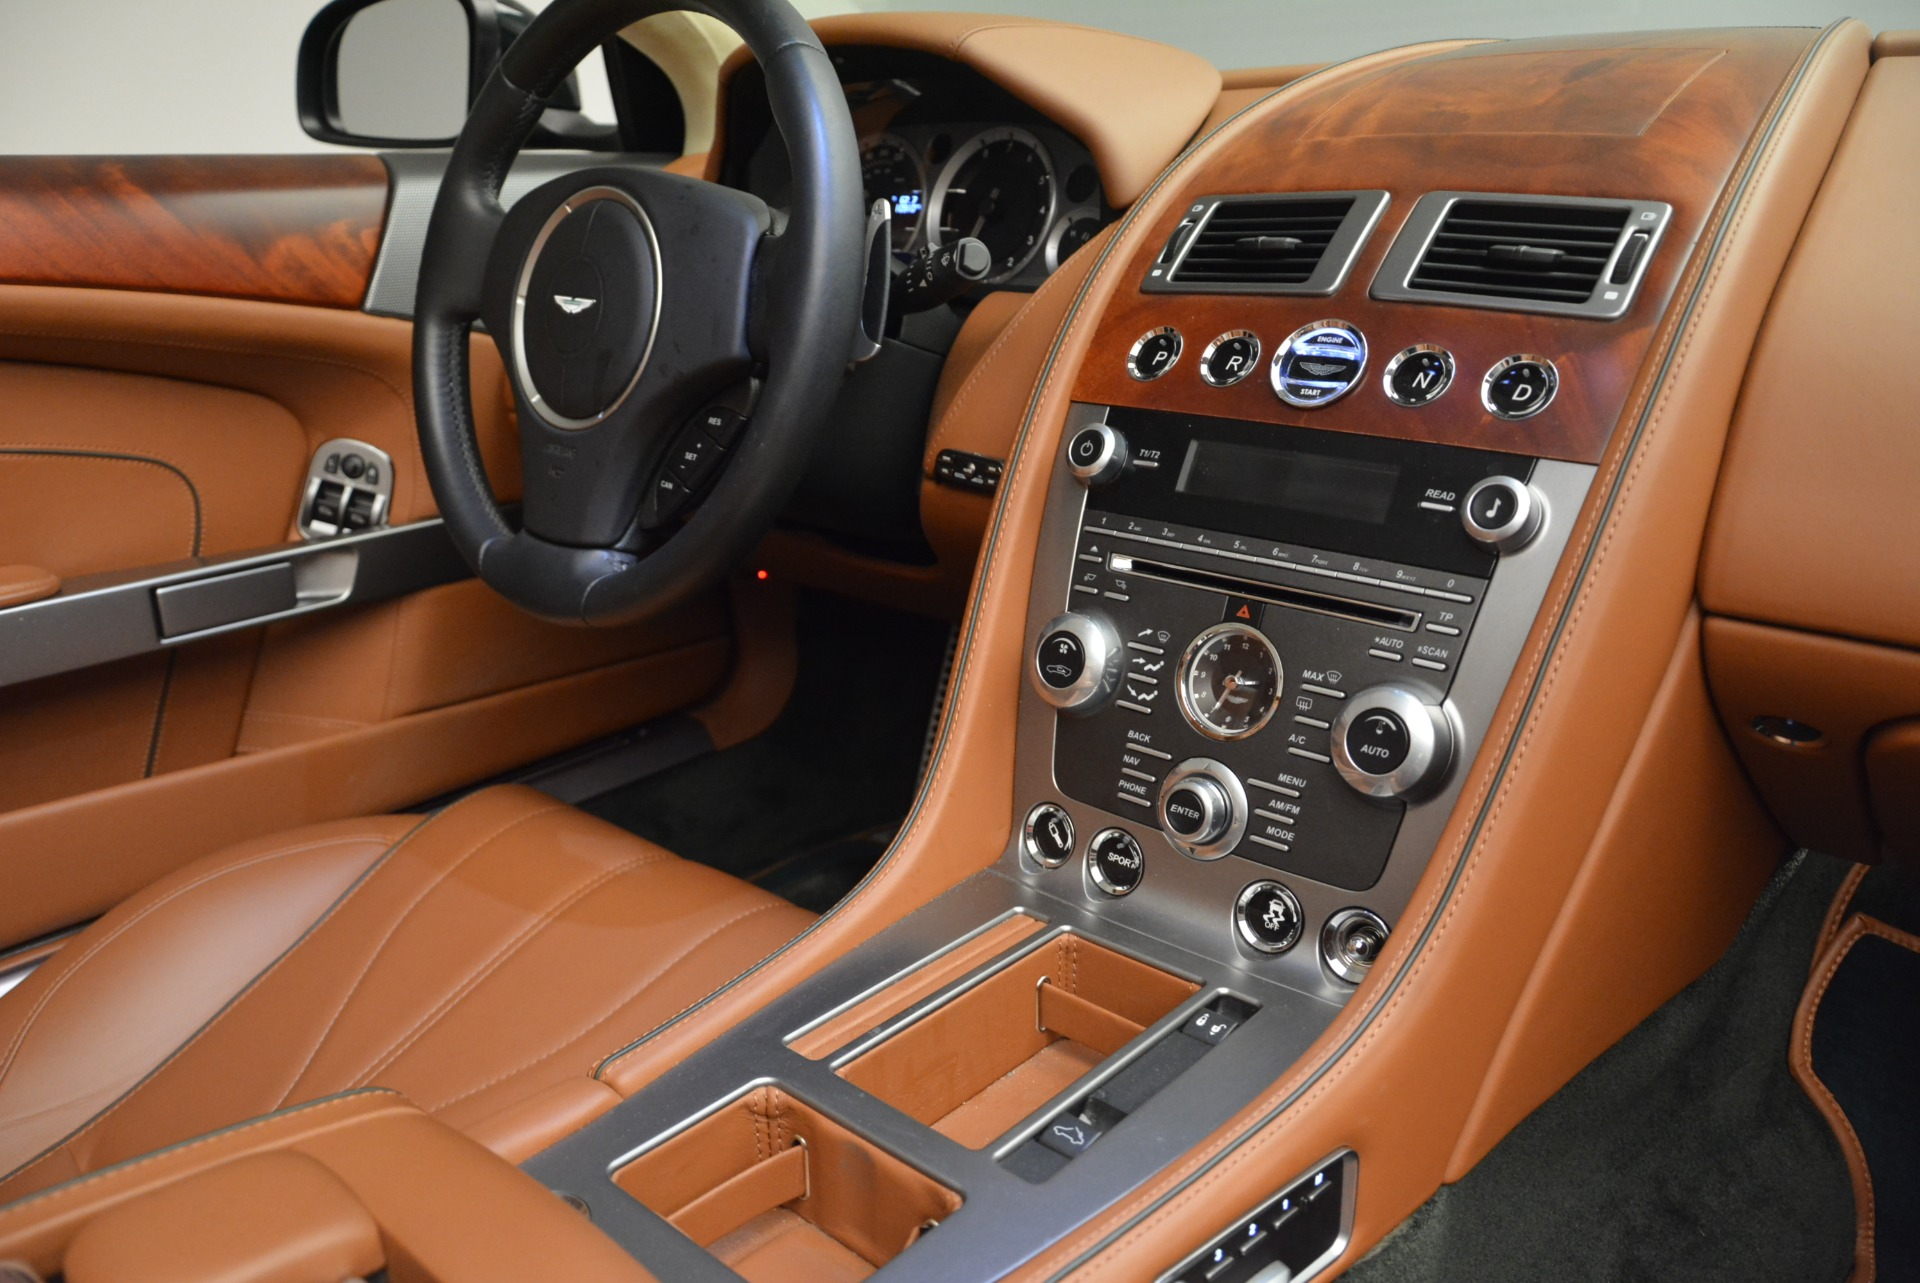 Used 2012 Aston Martin Virage Volante For Sale In Westport, CT 2508_p24